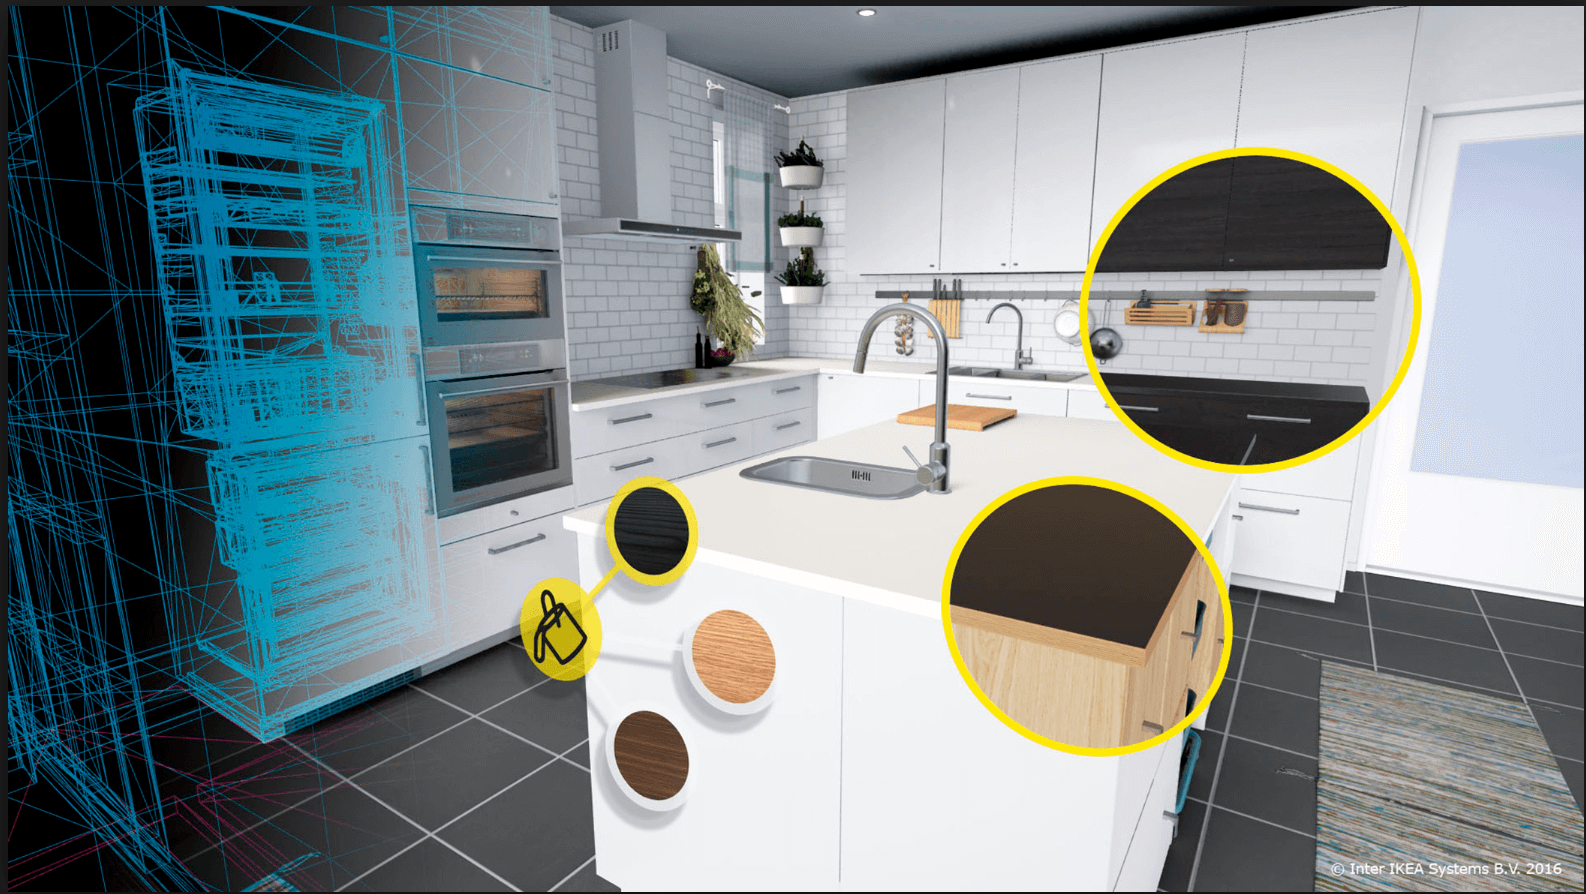 A View of Ikea Kitchen Using VR app for HTC Vive